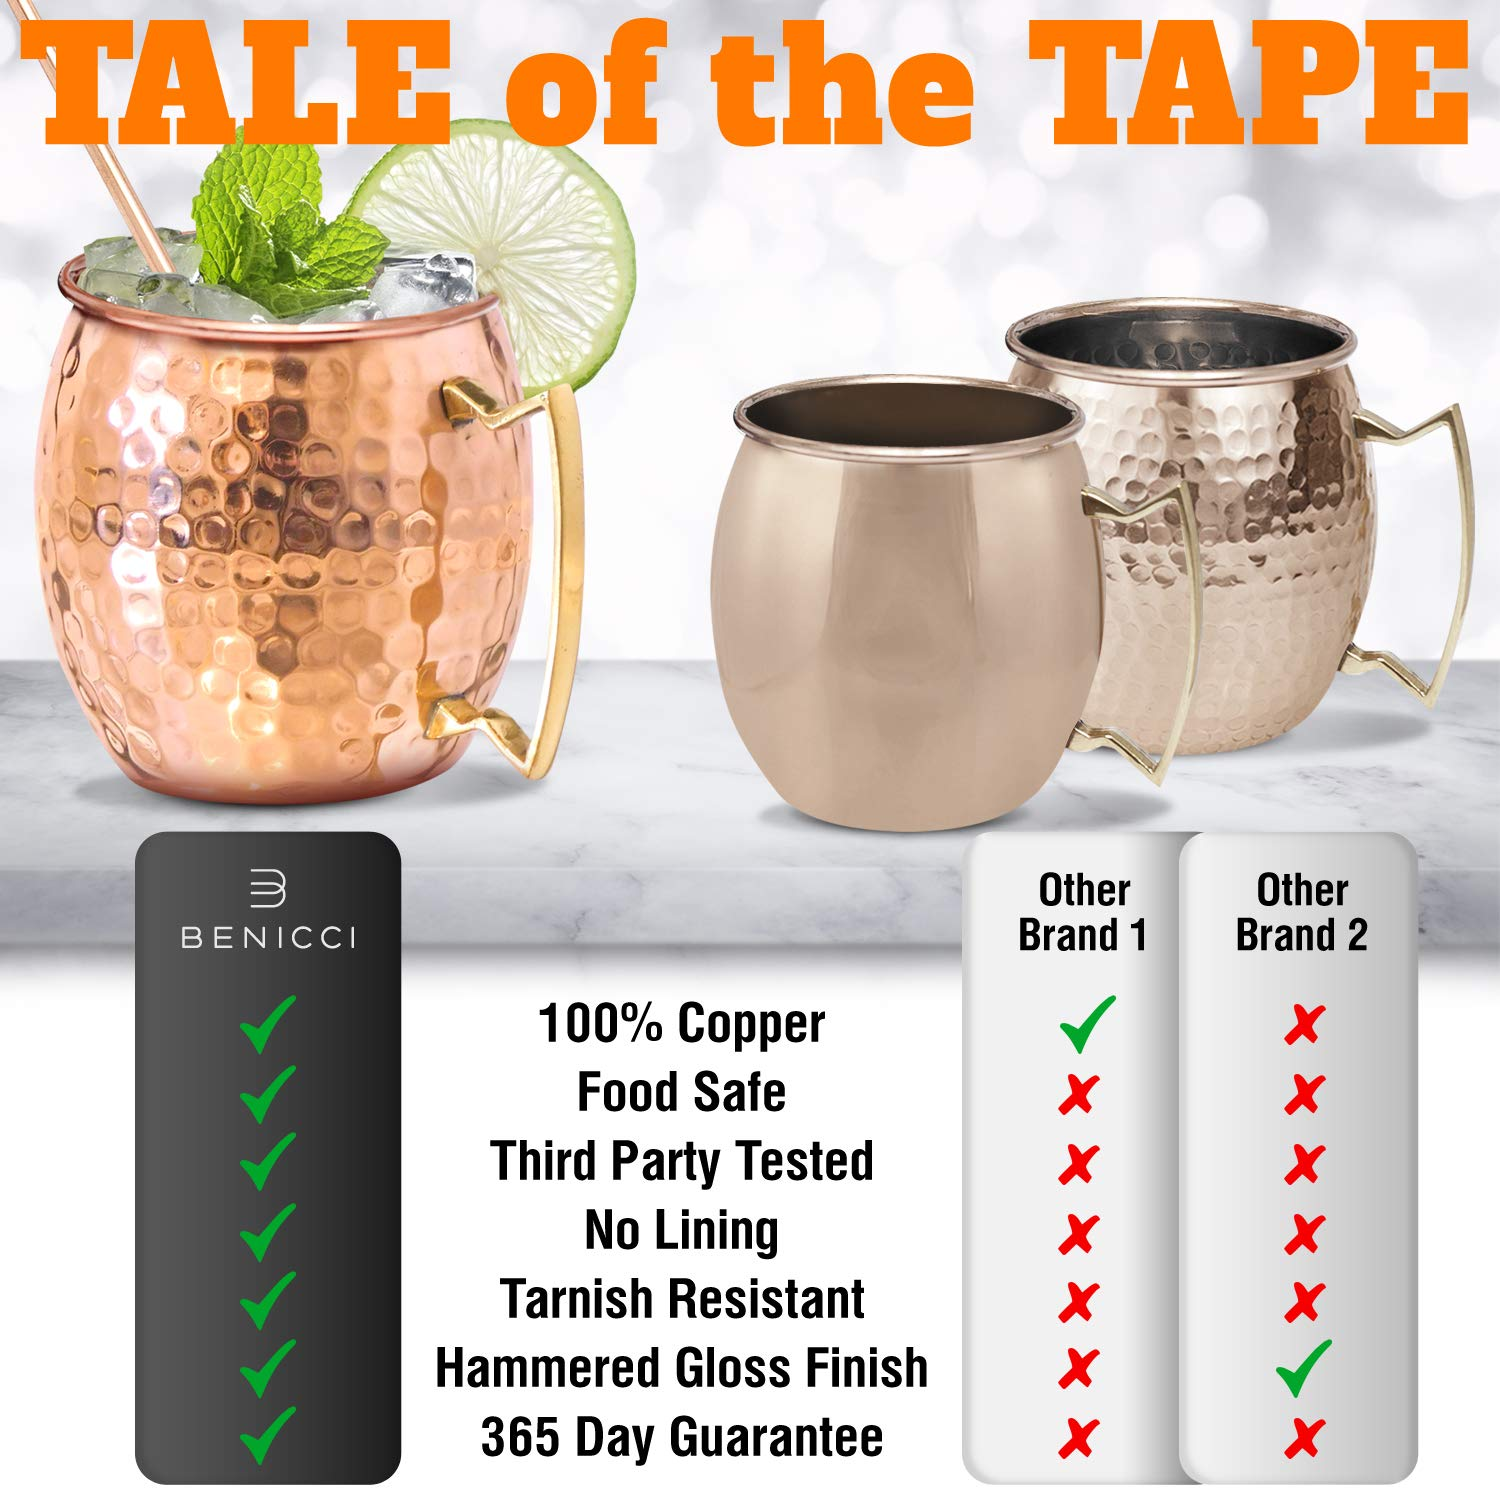 Moscow Mule Copper Mugs - Set of 4-100% HANDCRAFTED - Food Safe Pure Solid Copper Mugs - 16 oz Gift Set with BONUS: Highest Quality Cocktail Copper Straws and Jigger! by Benicci (Image #5)